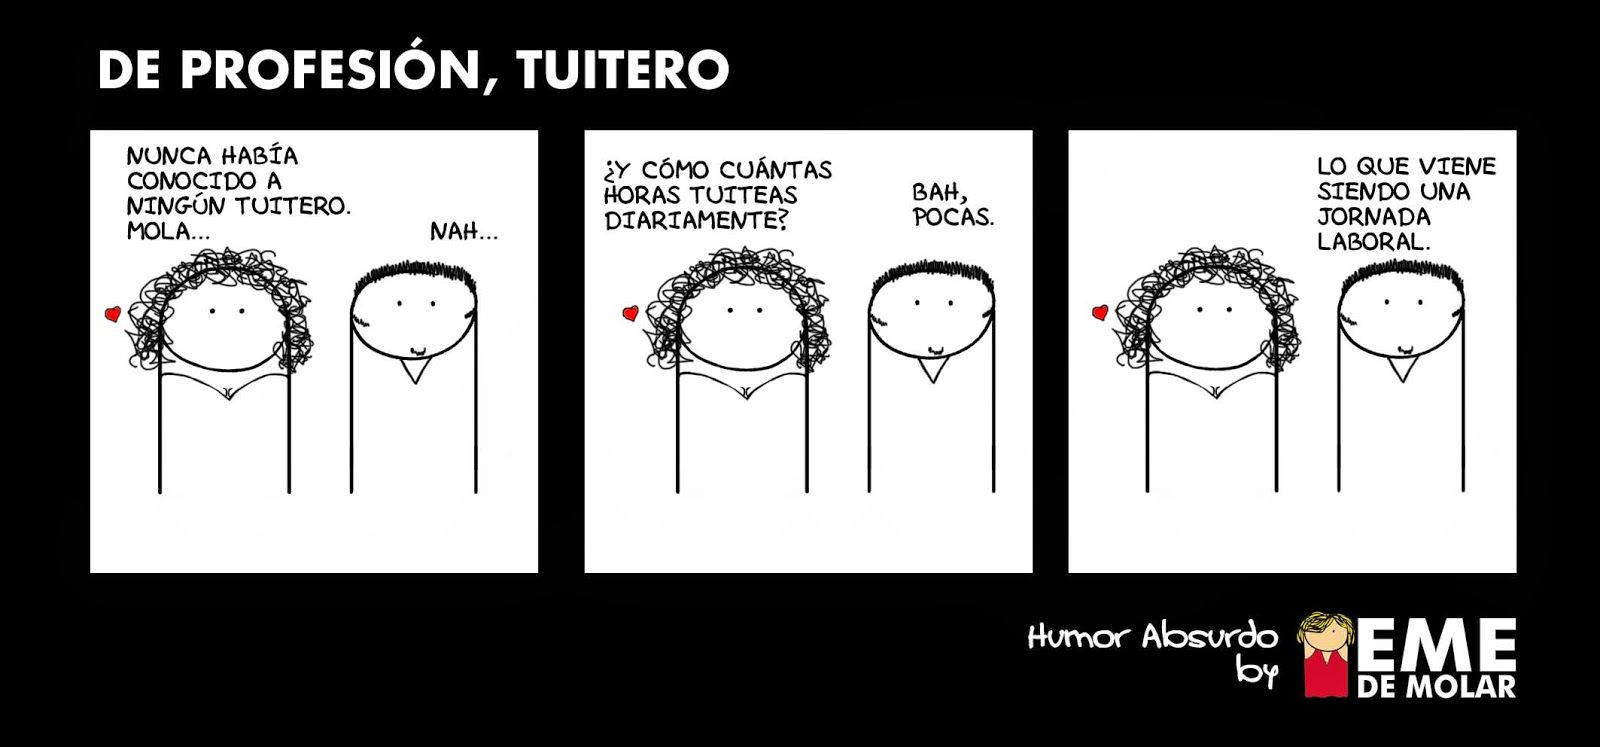 #humor #profesion #twitter #risas